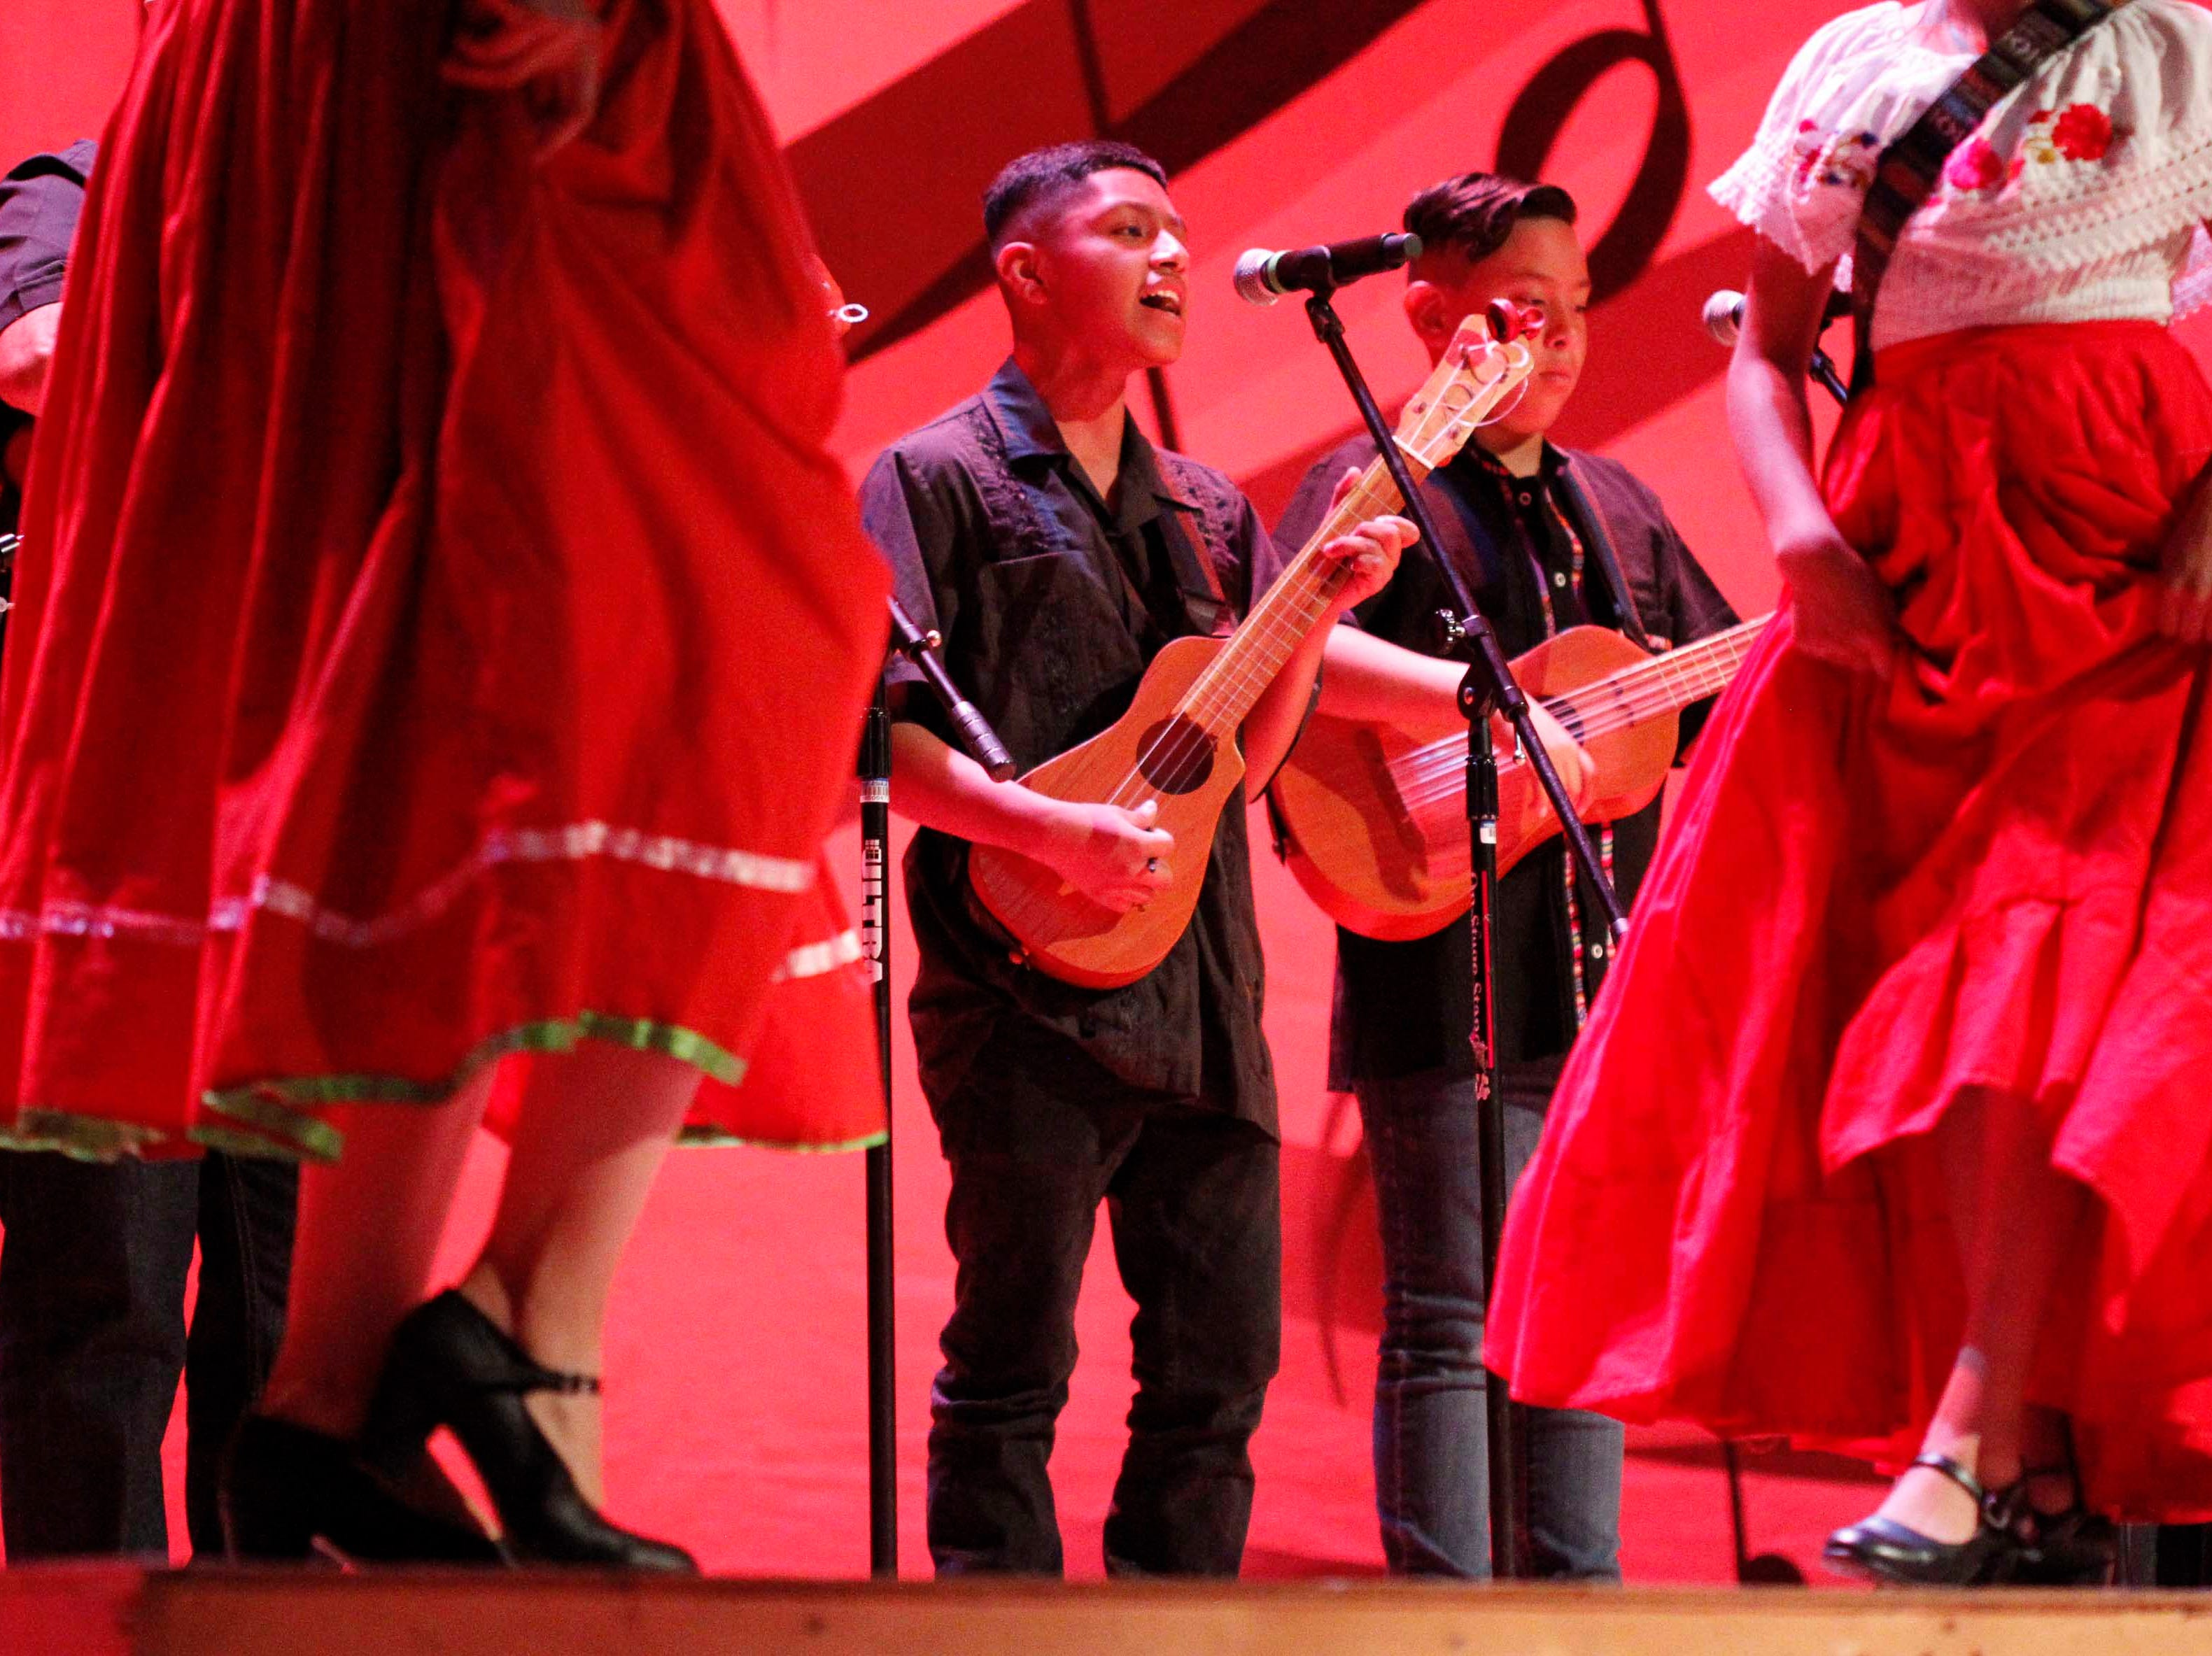 Son Jarocho Tradiotional performs during the first part of the 12th annual Noche Bohemia at Sherwood Hall on Saturday, April 27, 2019 in Salinas, Calif.